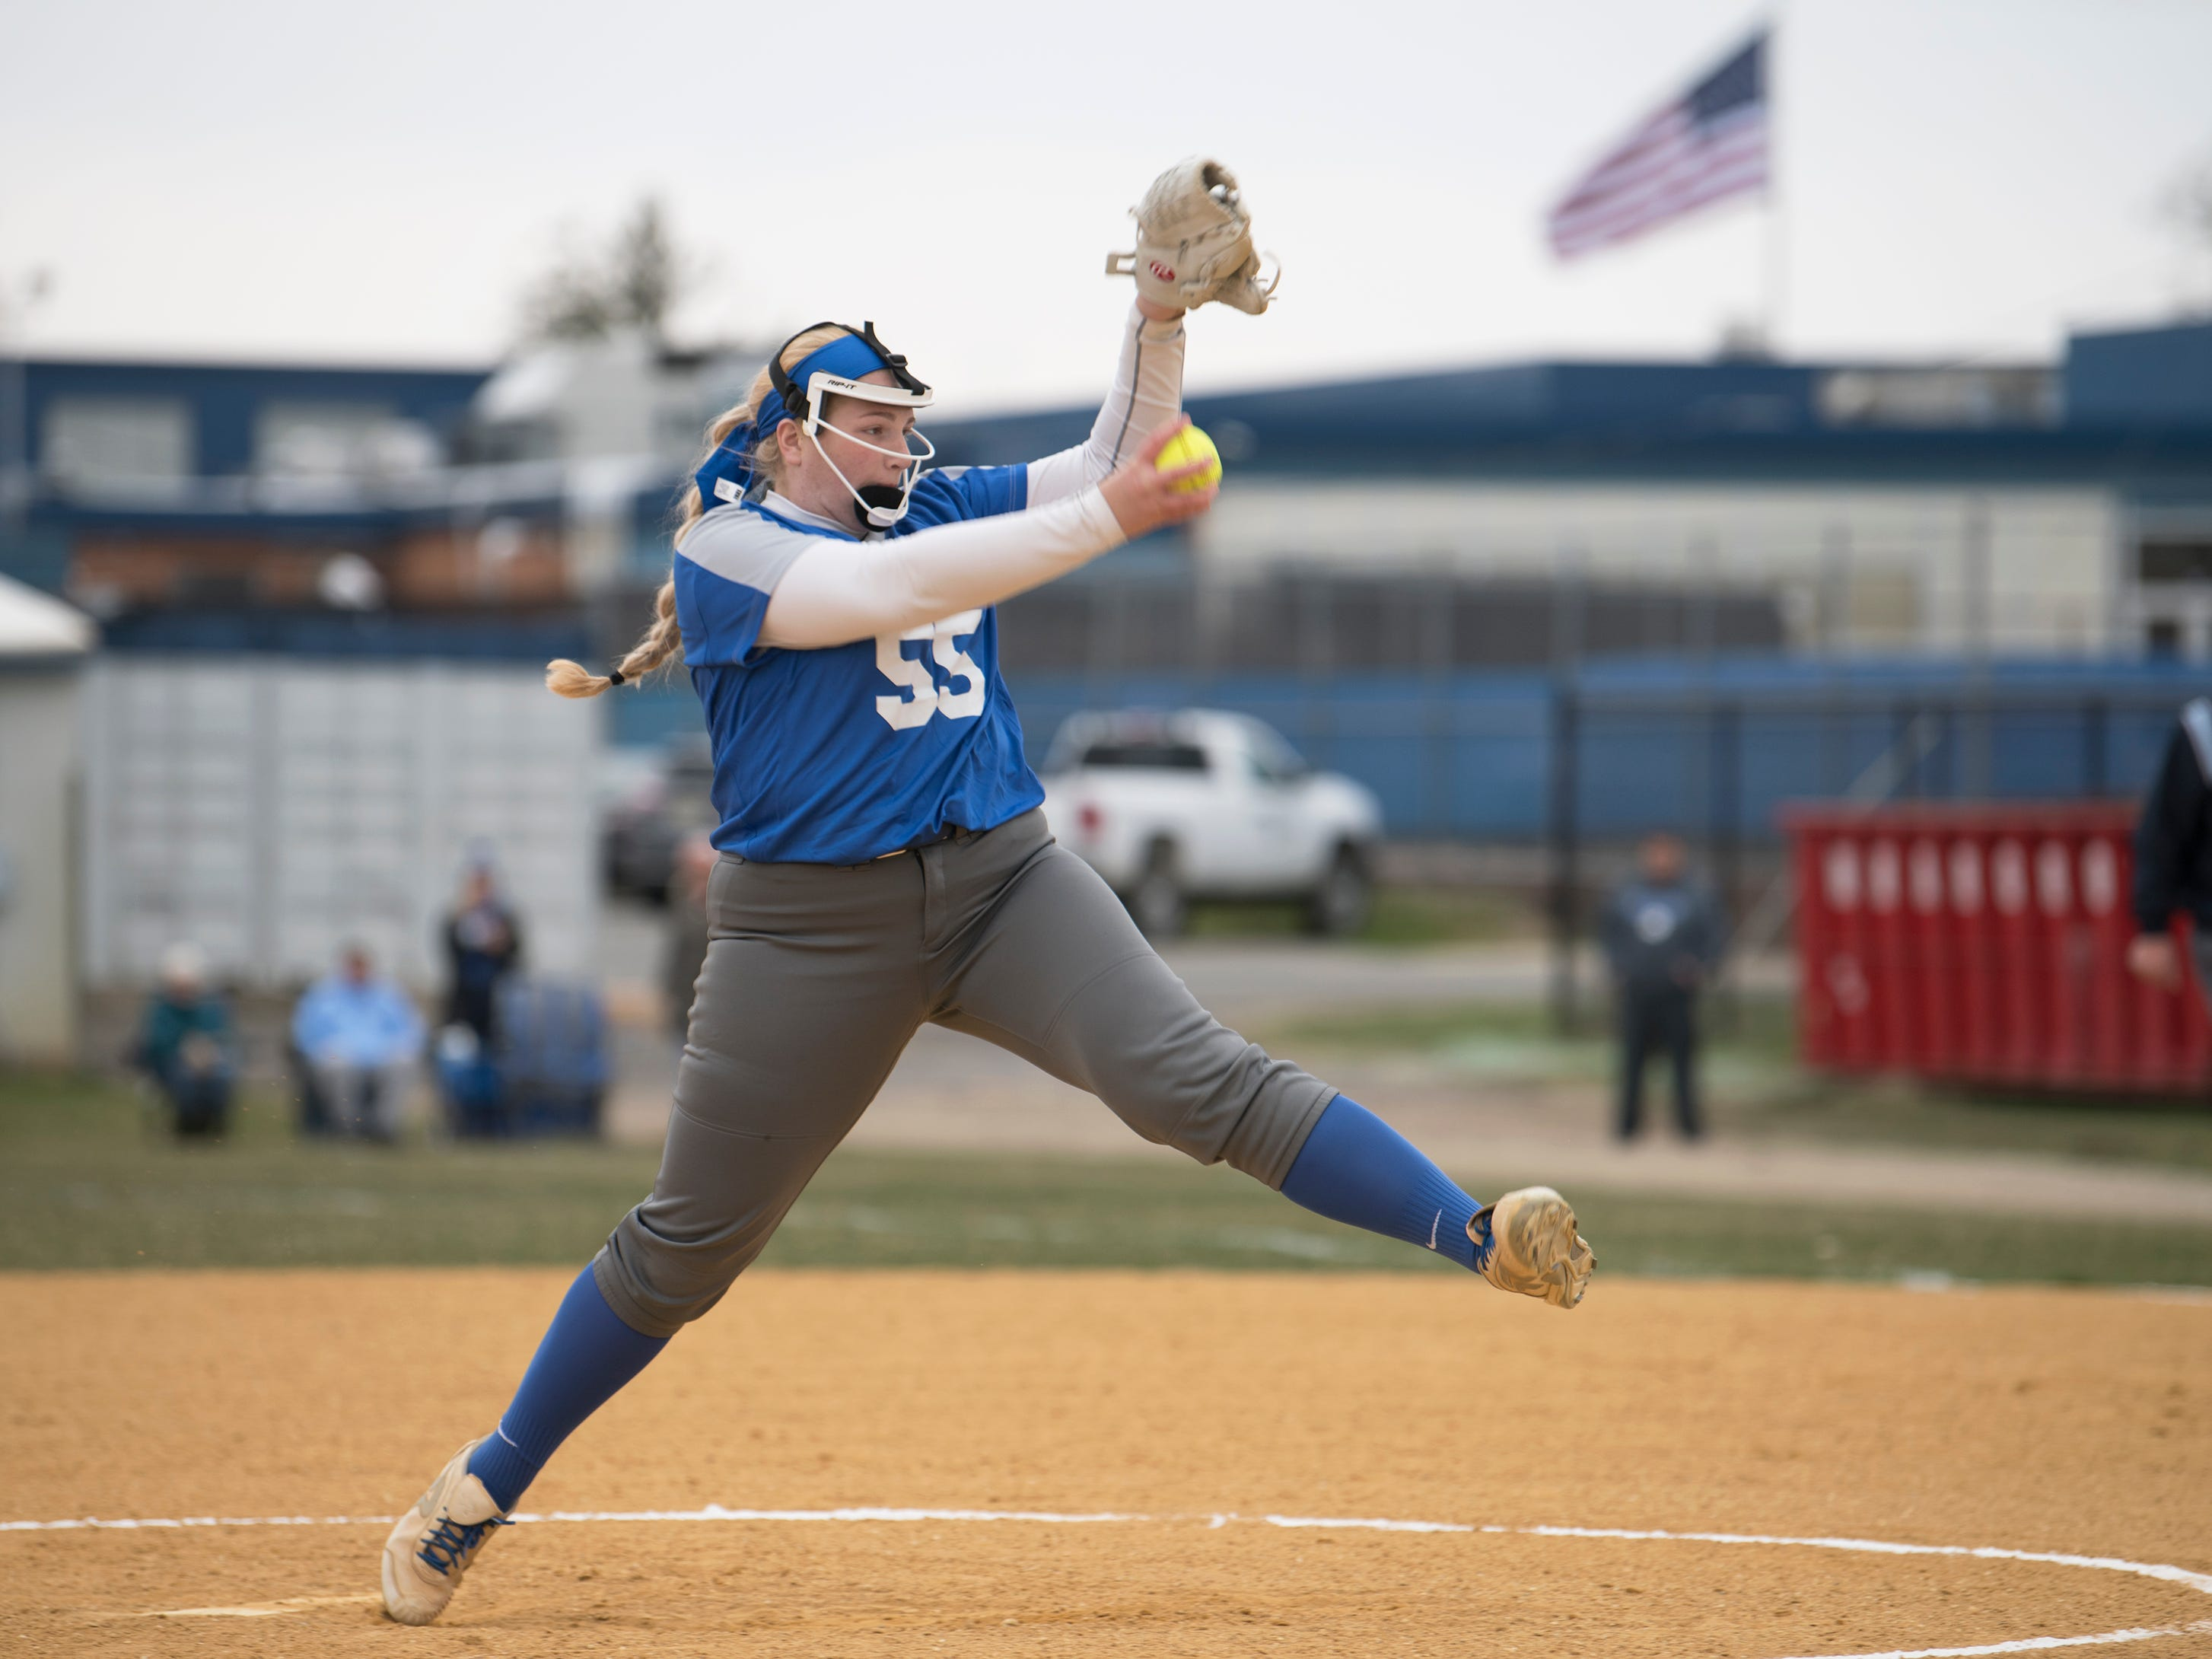 The Audubon High School softball team defeated Sterling, 9-3, at Sterling High School on Tuesday, April 2, 2019.